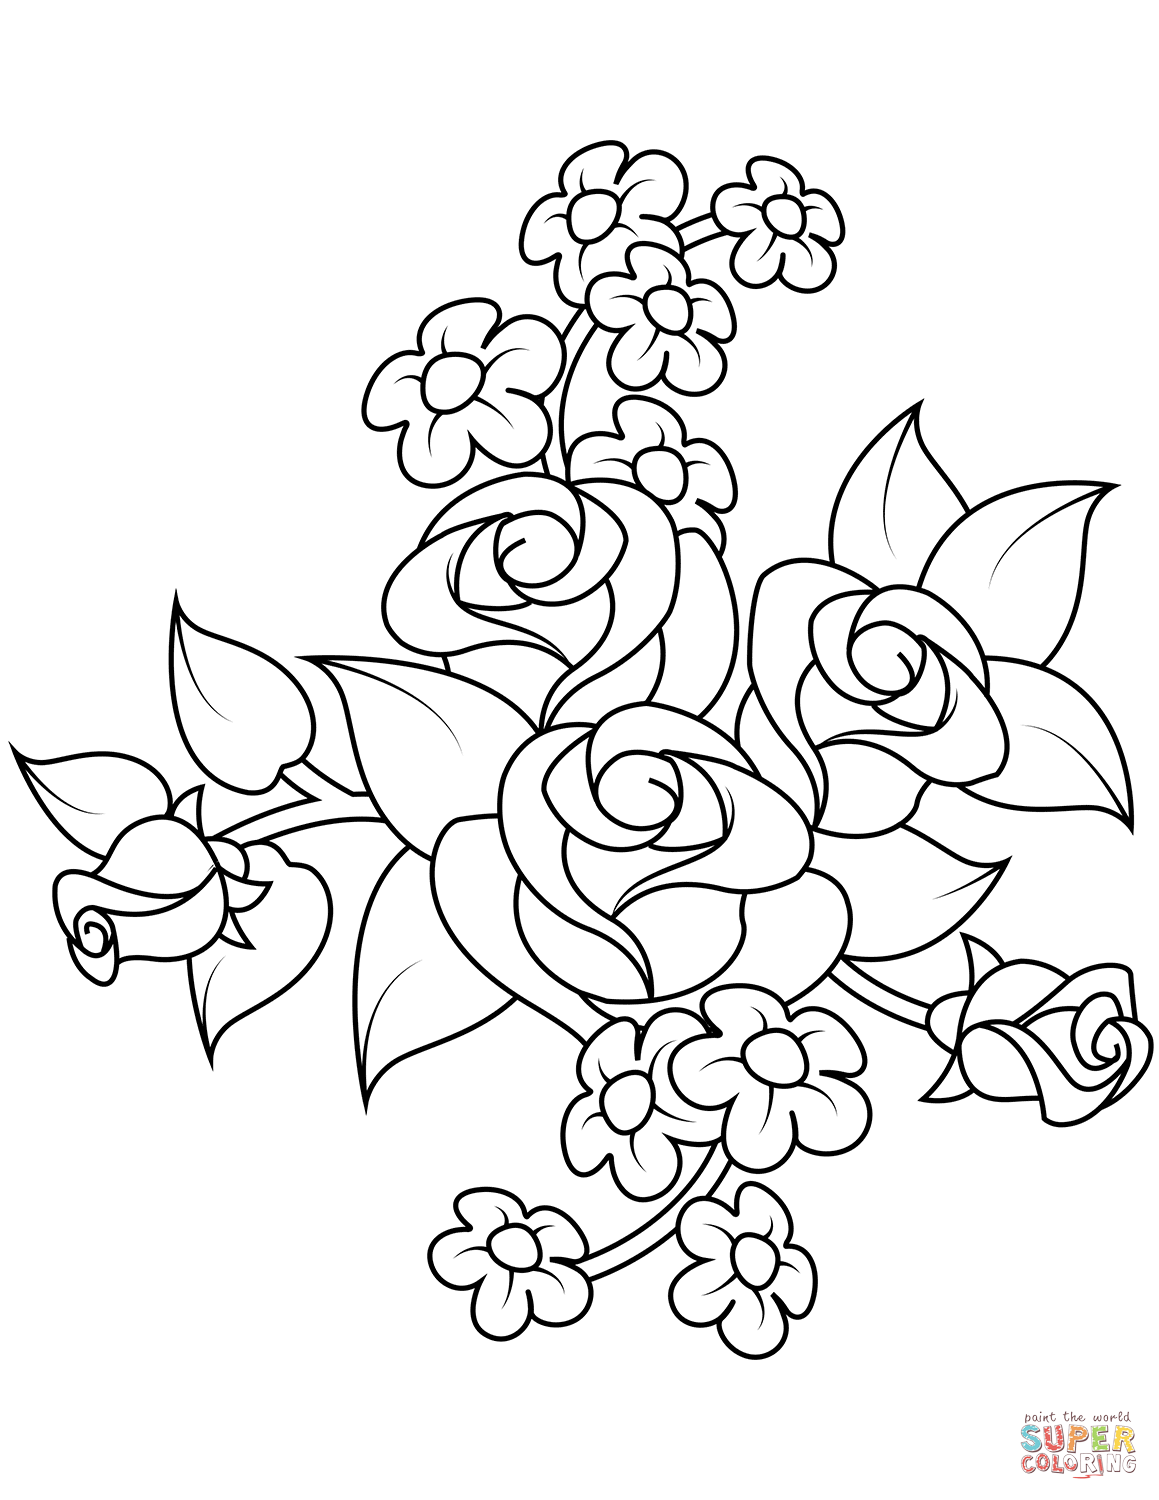 coloring sheet rose flower coloring pages get this online roses coloring pages for adults 88275 rose pages coloring sheet flower coloring